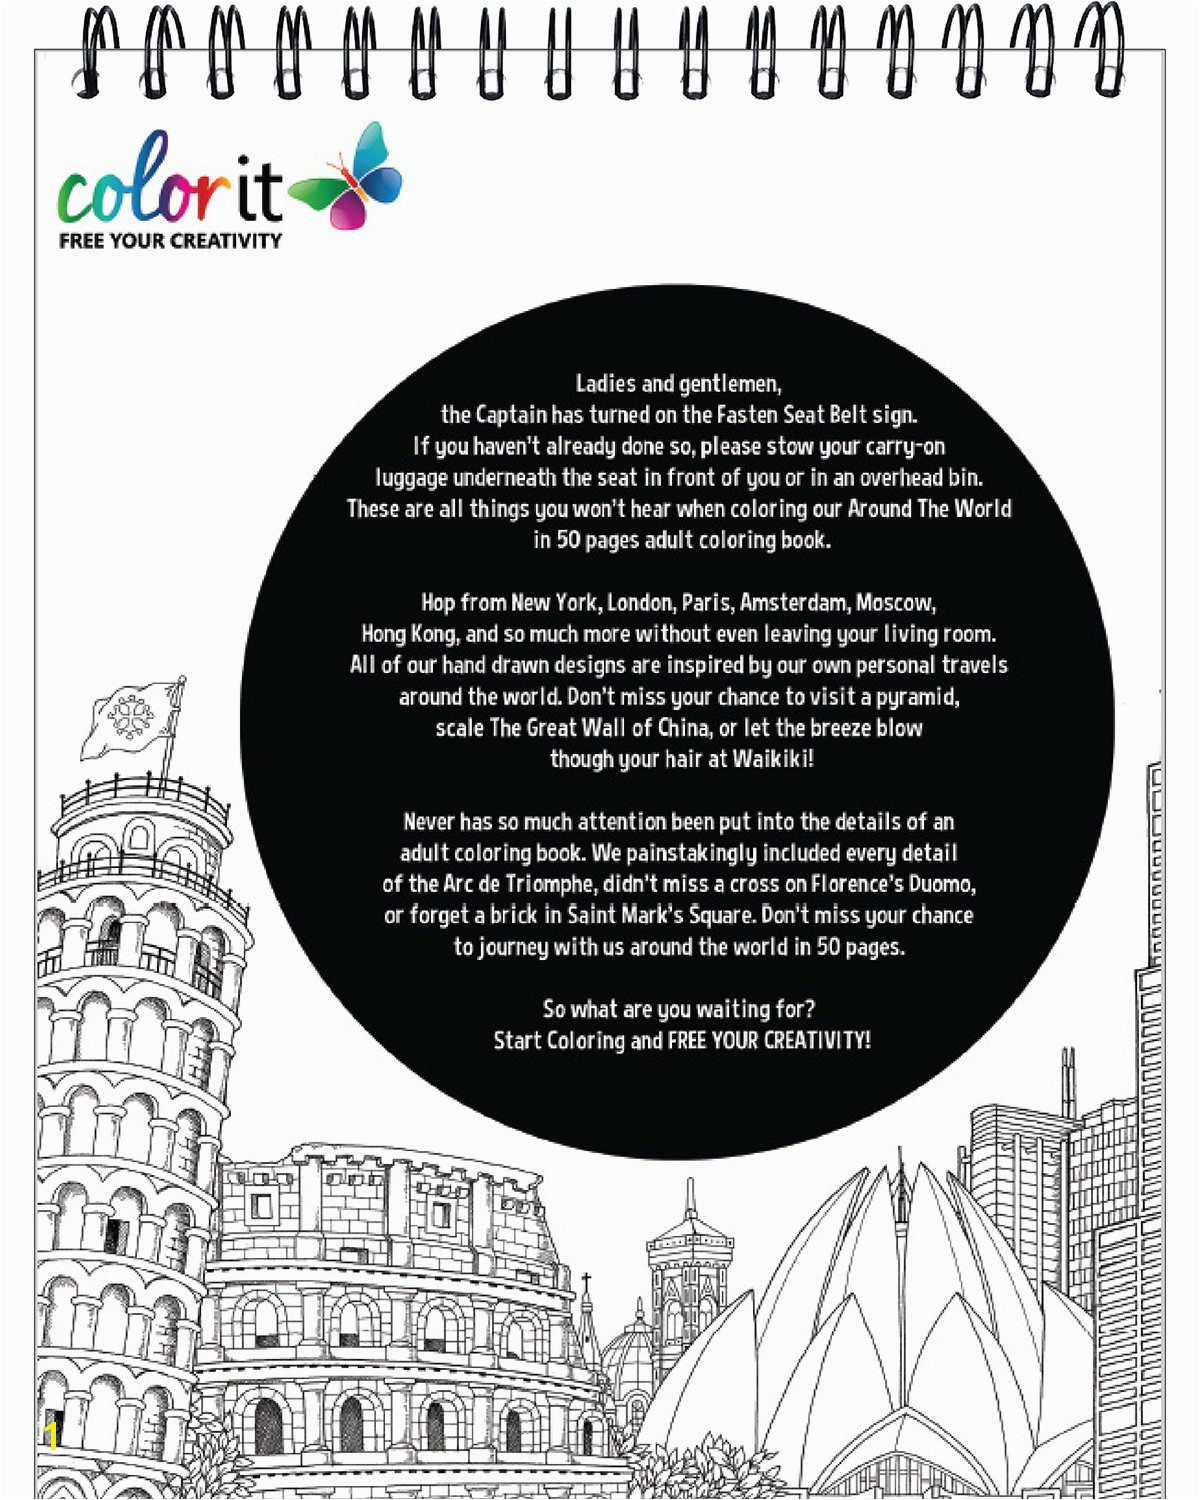 ColorIt Around The World In 50 Pages Cities Adult Coloring Book Features 50 Original Hand Drawn Coloring Pages for Men and Women ColorIt Hasby Mubarok